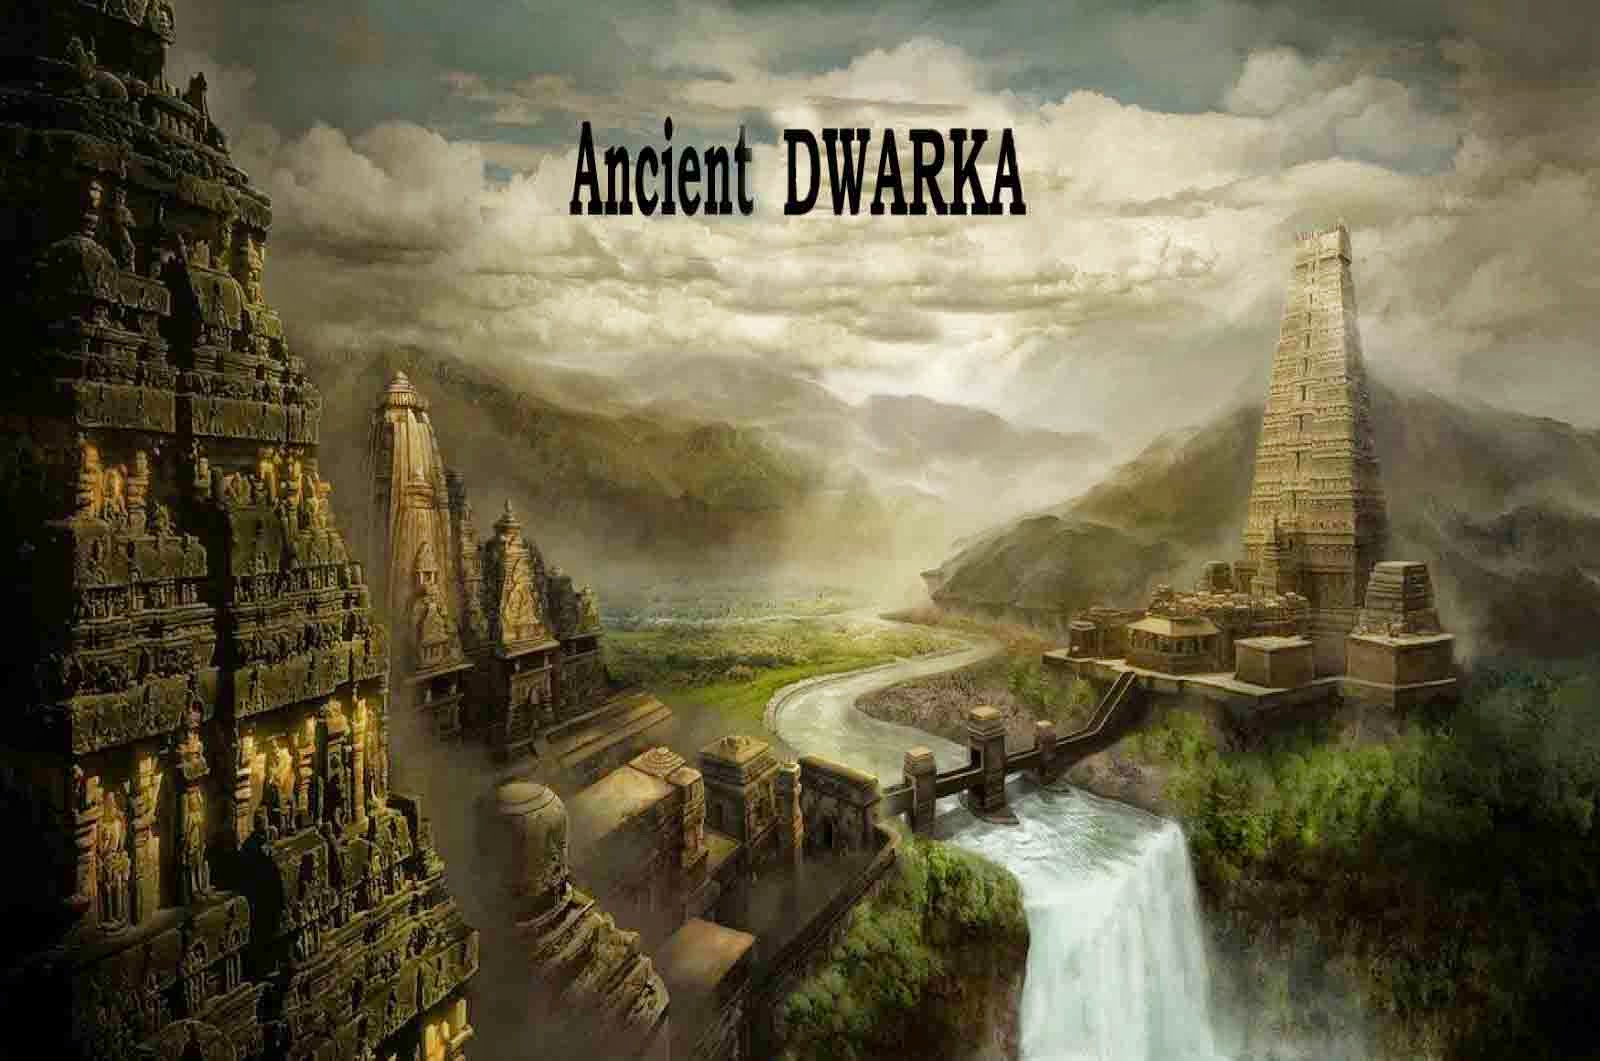 Ancient Dwarka